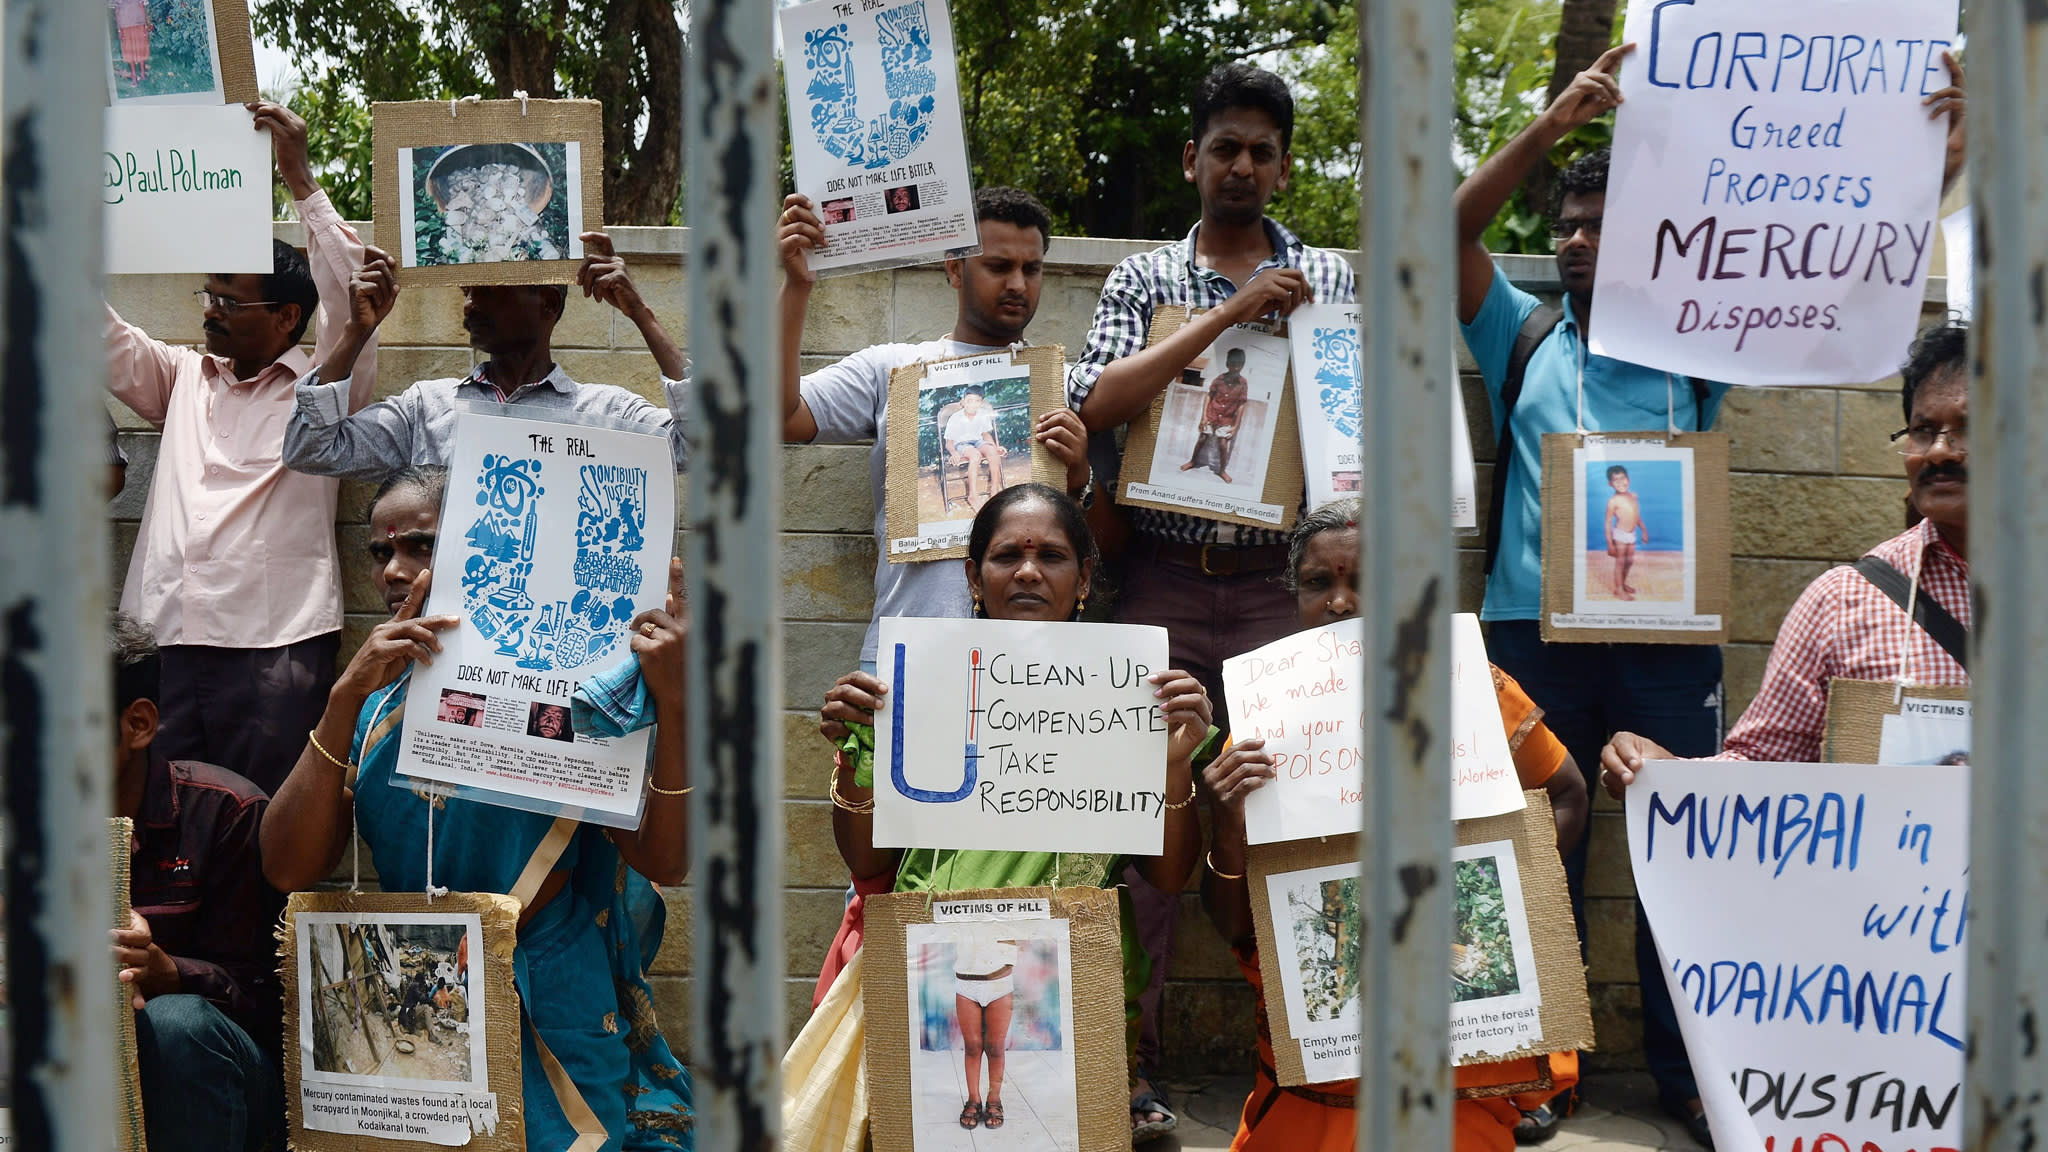 Social media proves its power as Unilever feels the heat in India | Financial Times